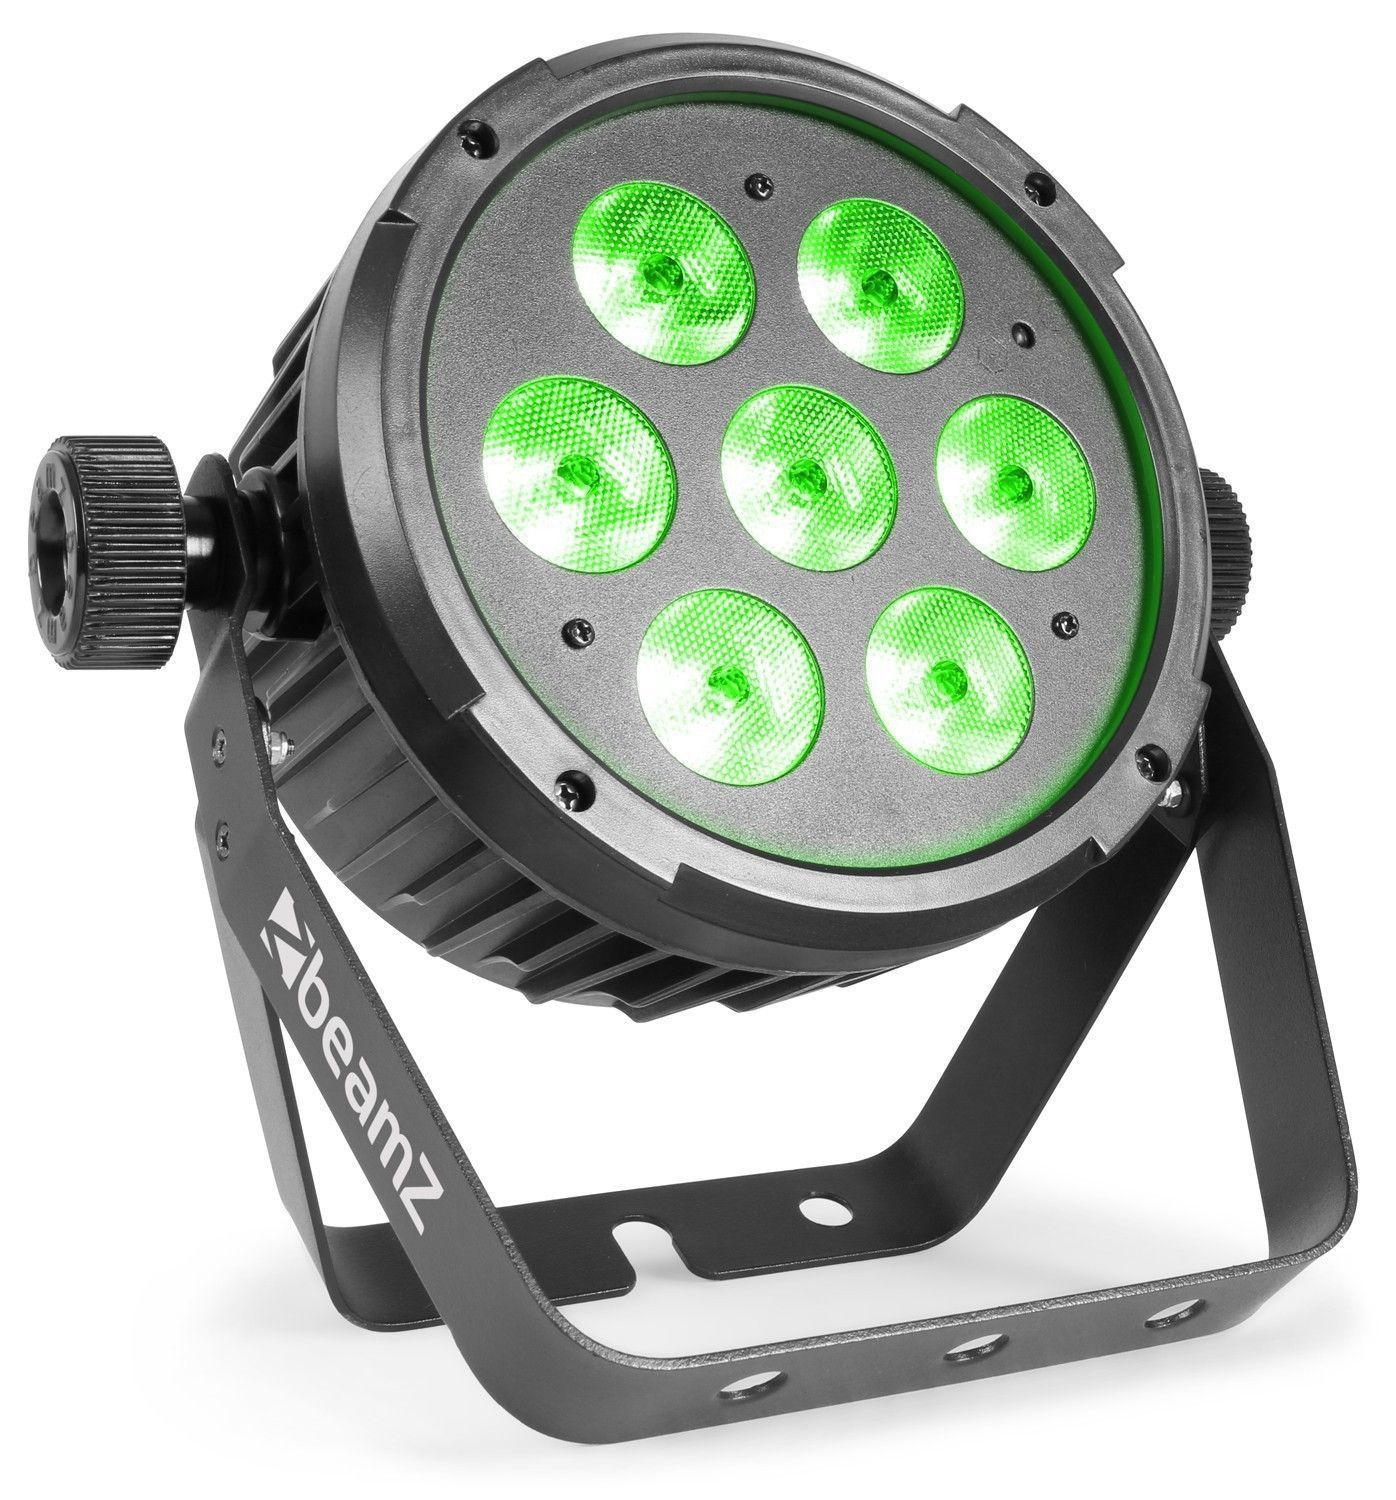 BeamZ BT270 LED flatpar met 7x 6W RGBW LED's incl. remote